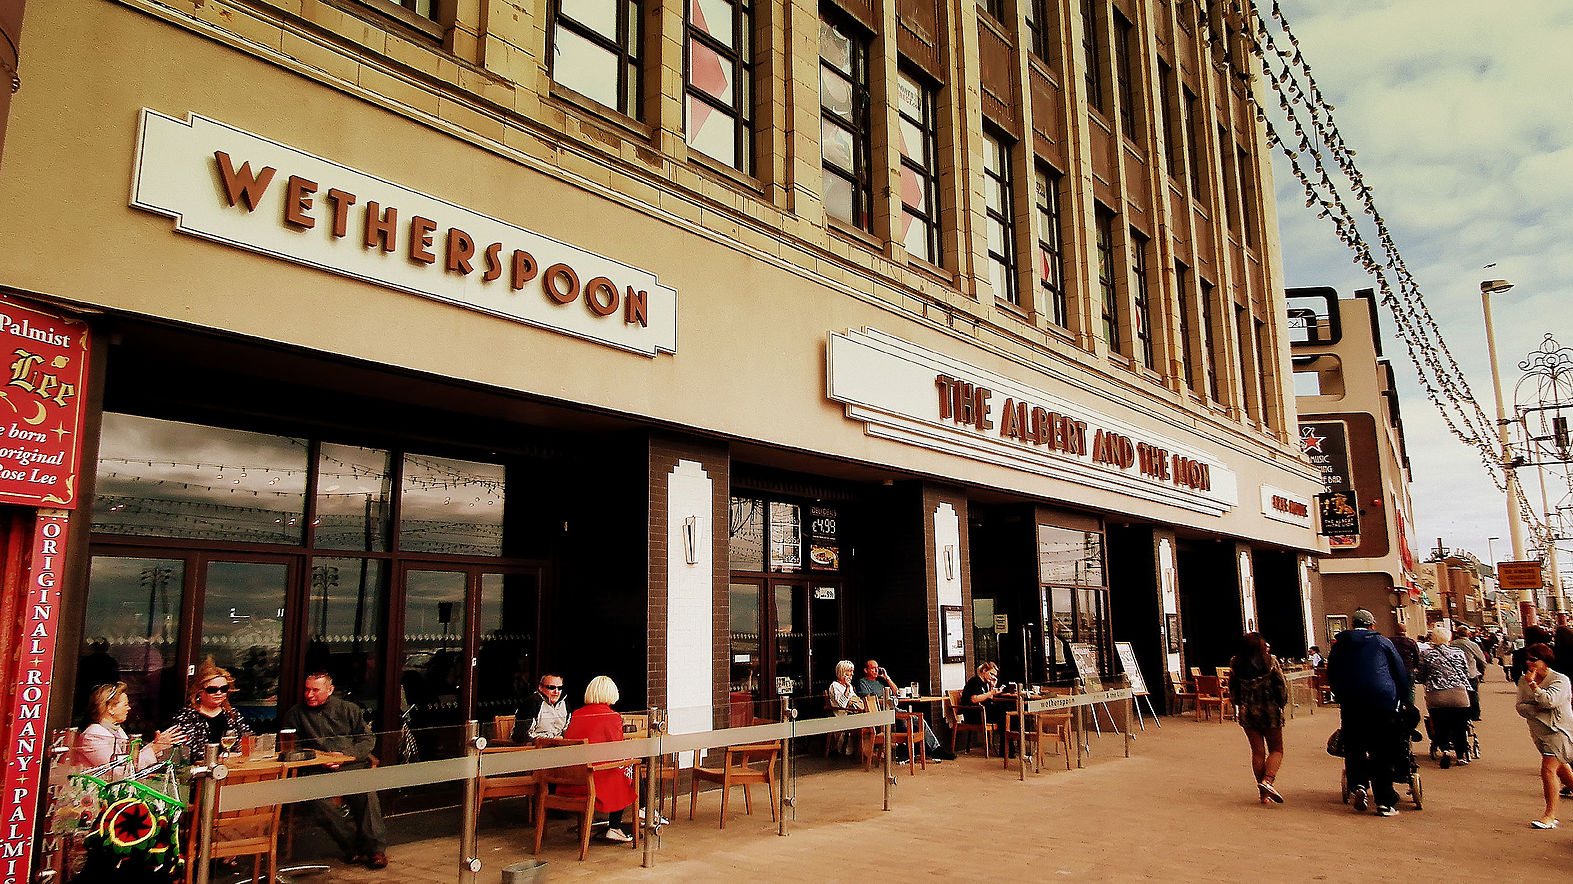 Dogs banned from all Wetherspoons pubs from tomorrow